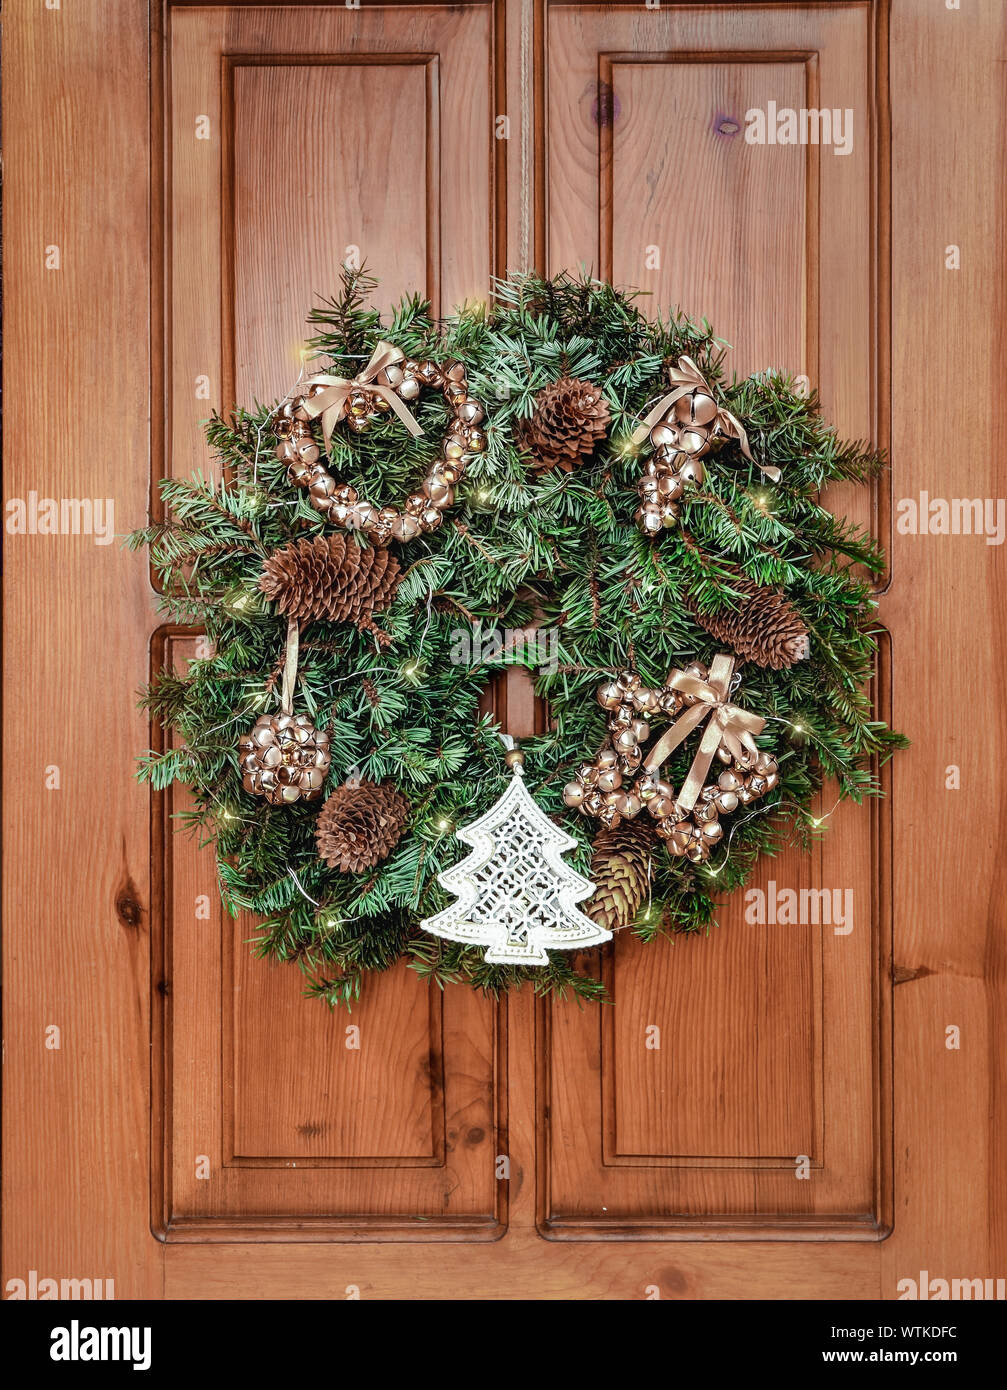 New Year and Christmas decor. Ornament a wreath from branches ate with cones, lights of a garland and gold spheres. Traditional Christmas decoration f Stock Photo